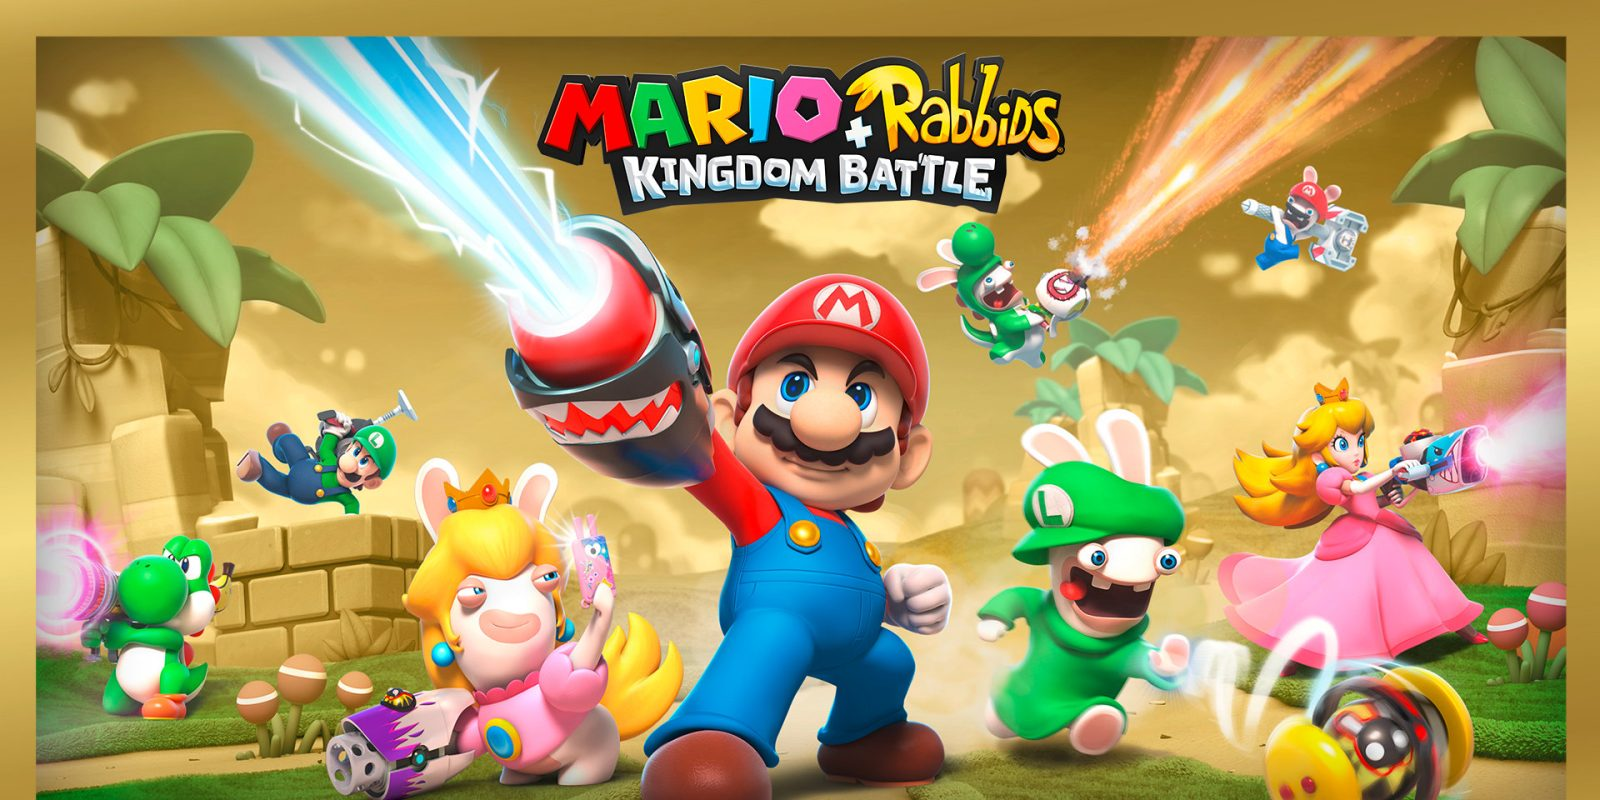 Today's Best E3 2019 Game Deals: Mario + Rabbids Gold $26, Far Cry New Dawn $20, more